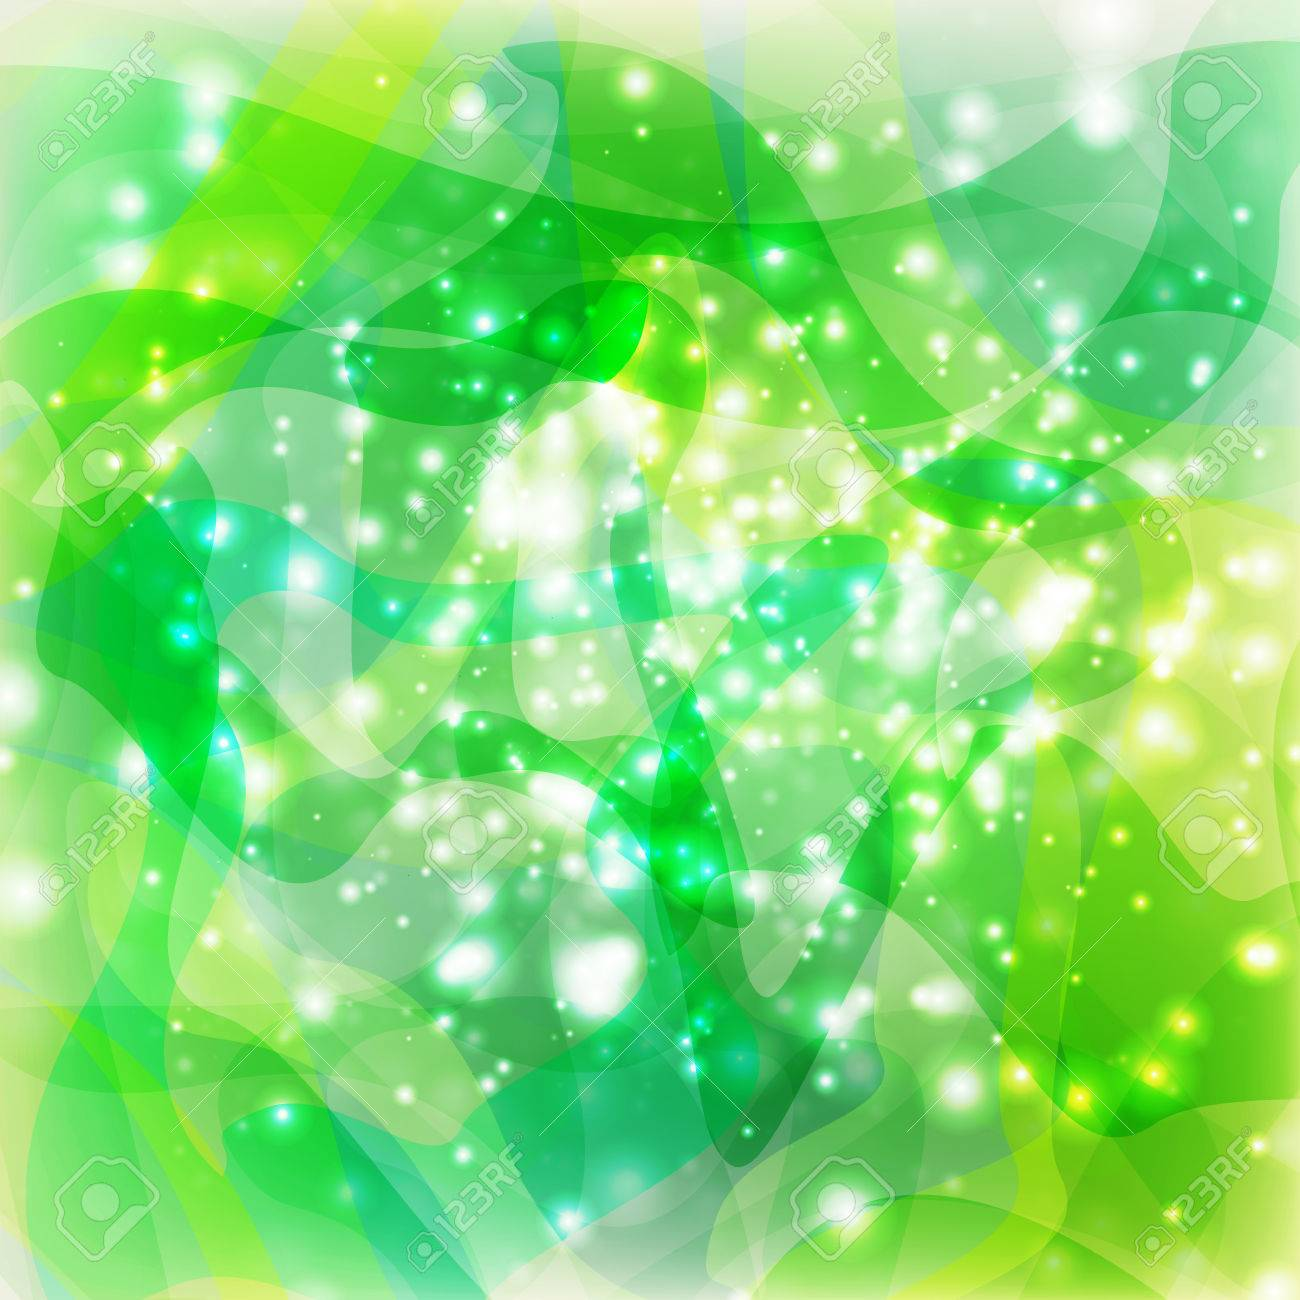 abstract green lights - 66619012